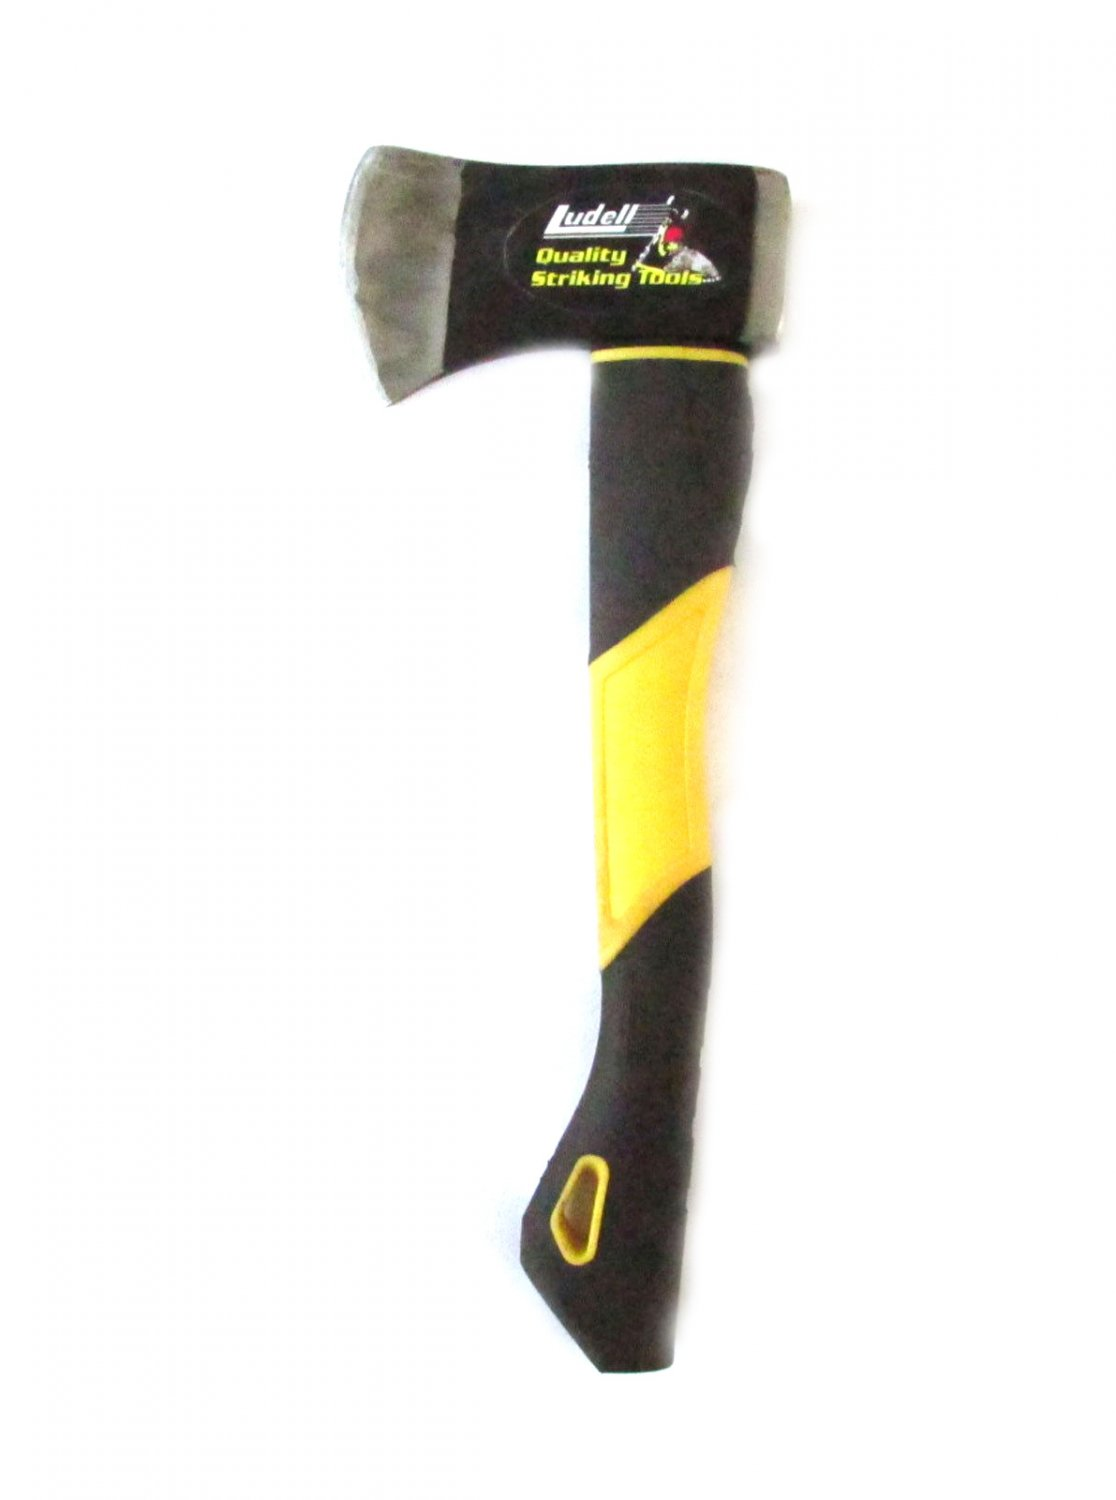 "Ludell Hatchet 14"" Long Camping Hatchet"